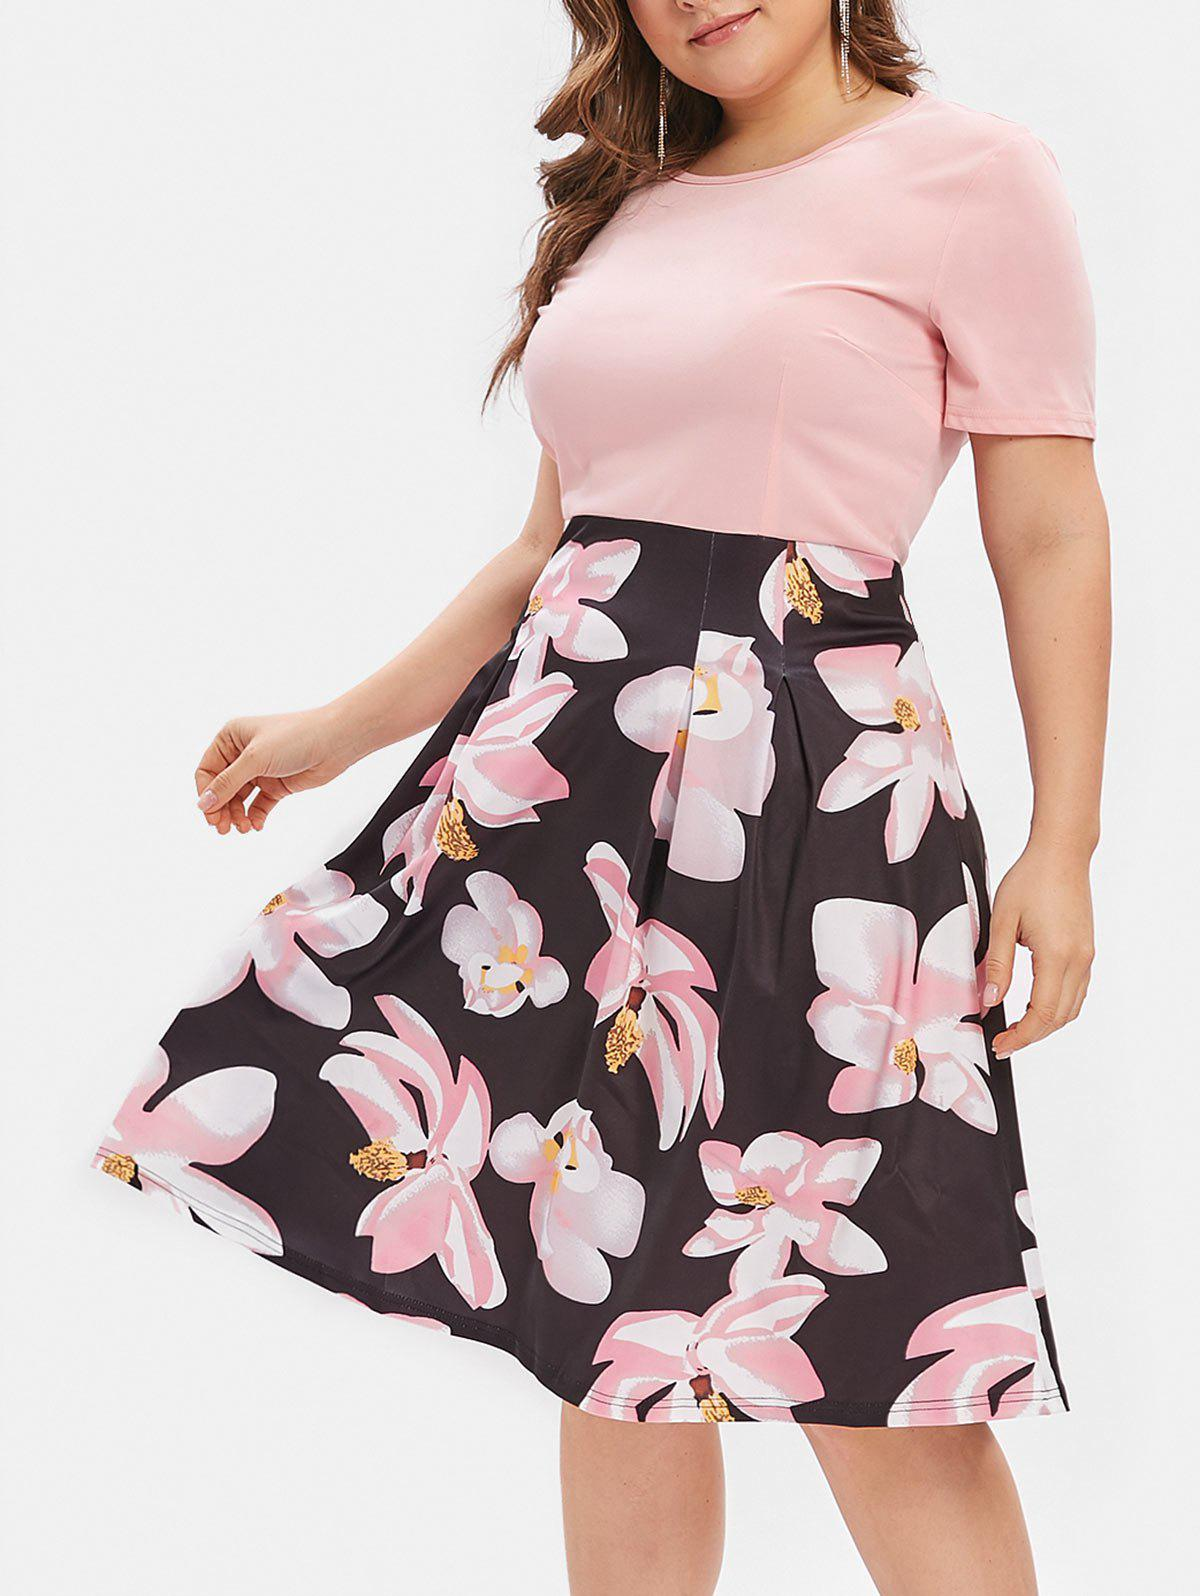 Plus Size Flower Print A Line Dress - LIGHT PINK 5X